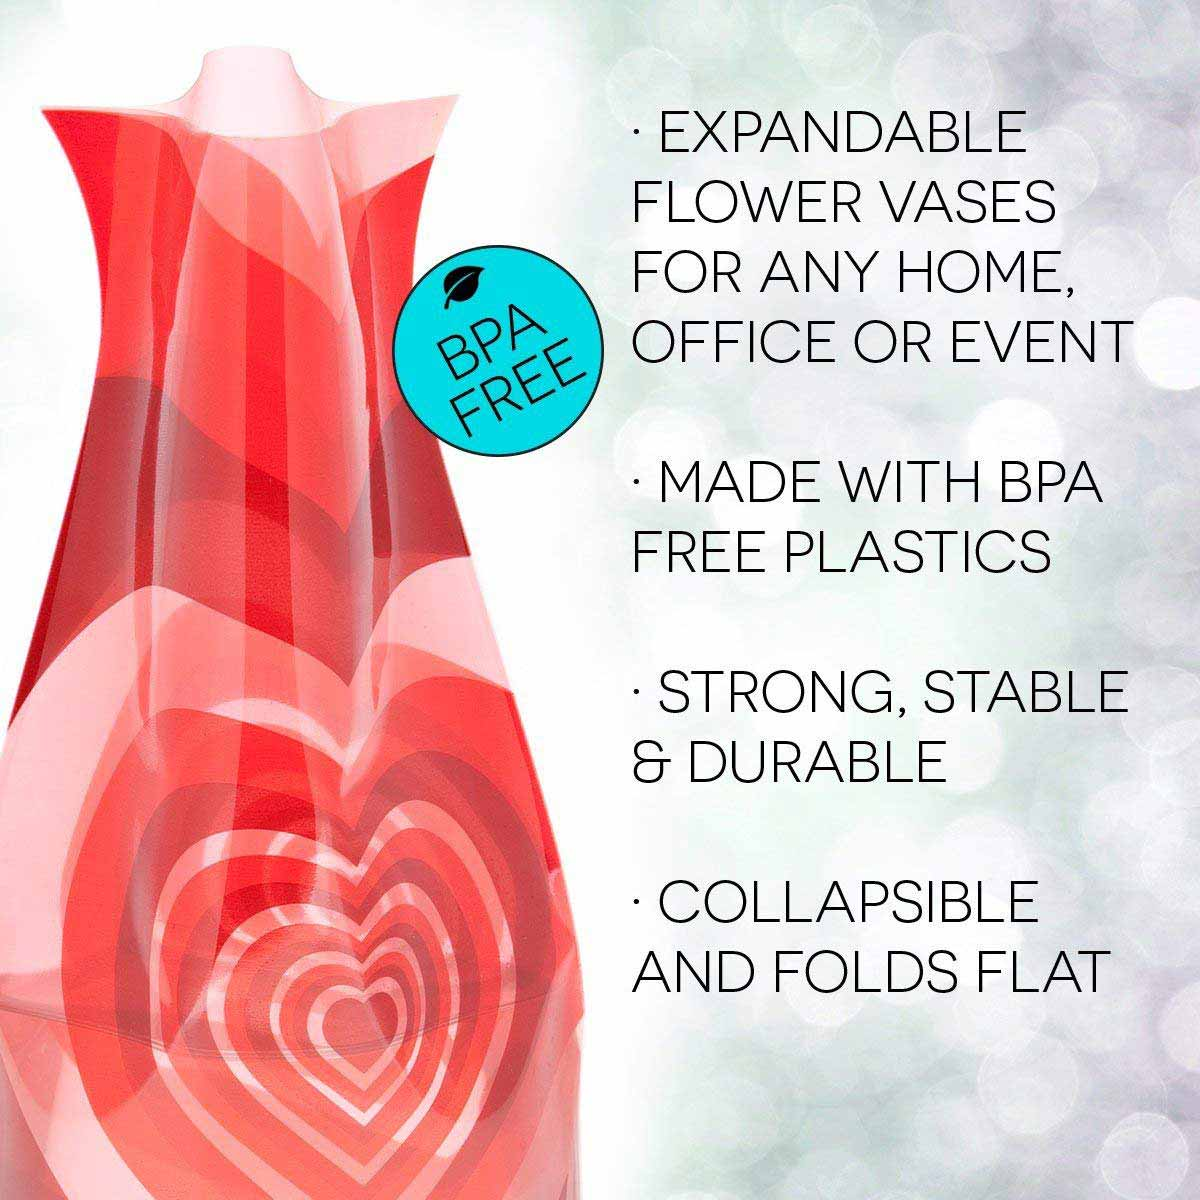 Expandable and Collapsible Vase VenusDeModgy   The Design Gift Shop